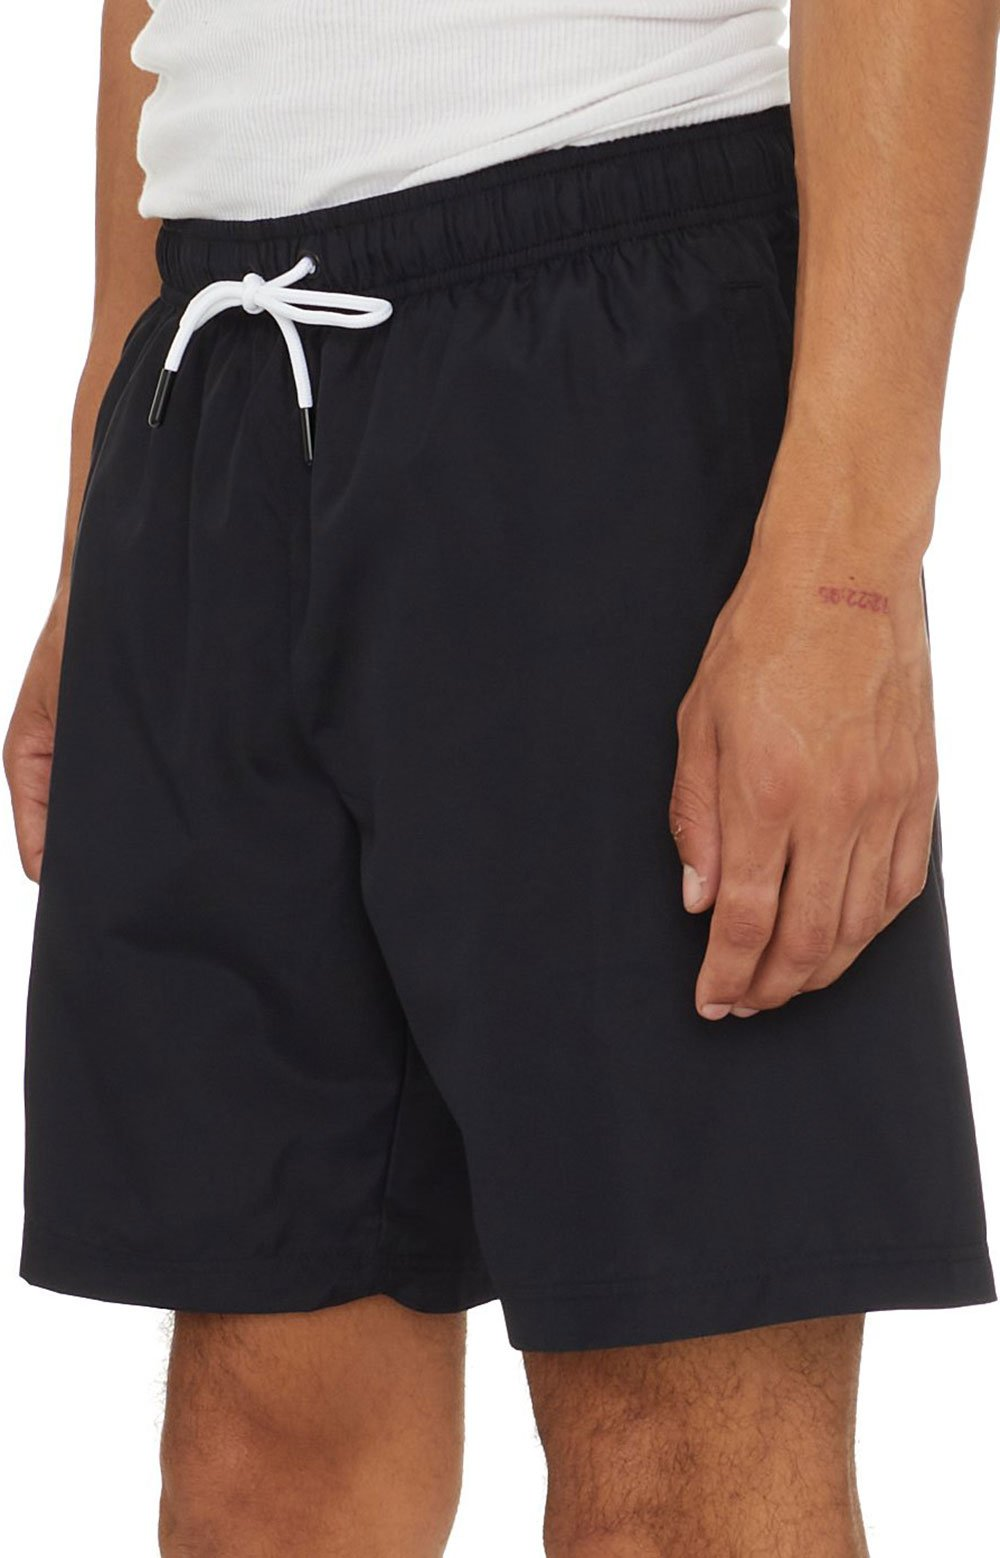 Authentic Pop Emay Shorts - Black/White  5